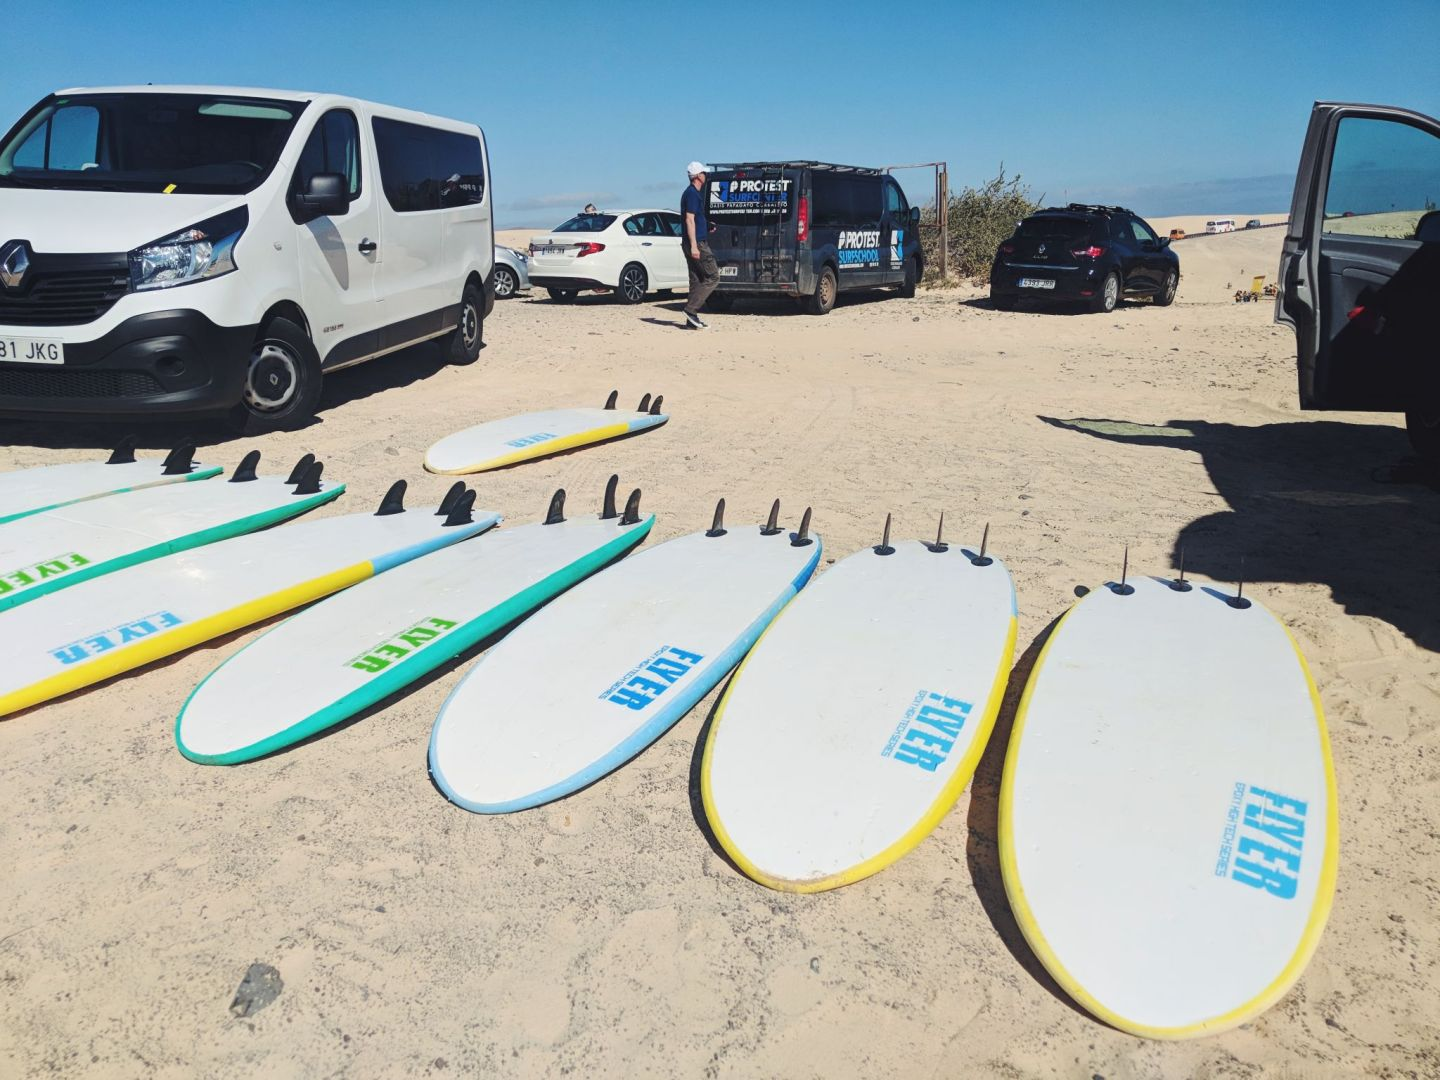 Surfboards at Planet Surf surf camp in Corralejo